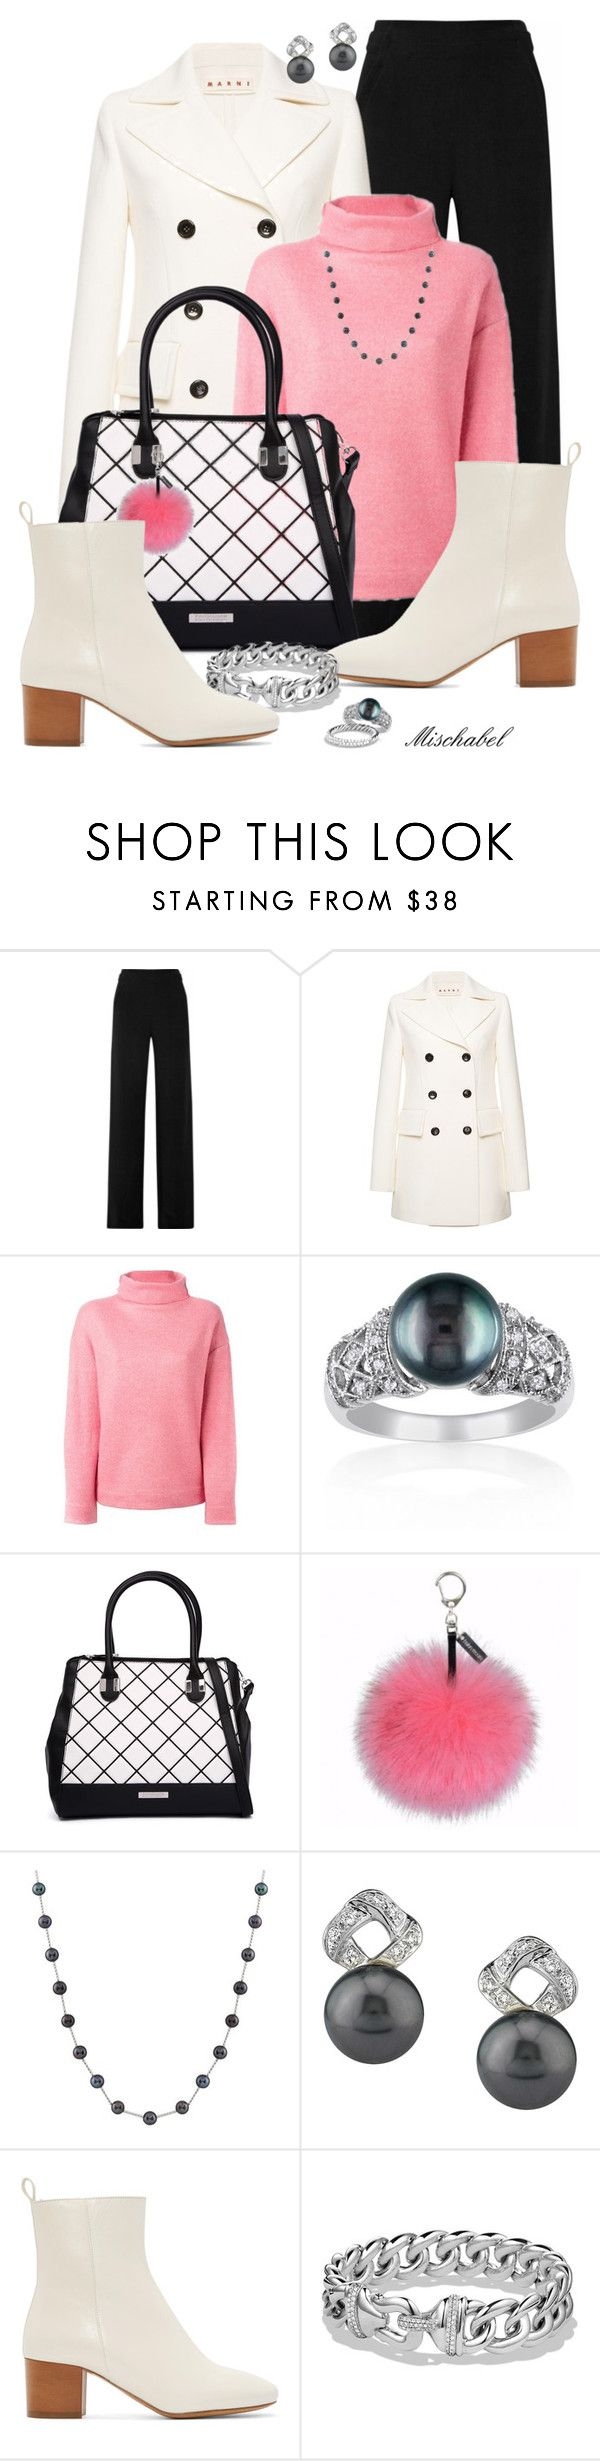 """It Girl - White Boots & Pom Pom Keyring (99)"" by mischabel ❤ liked on Polyvore featuring Proenza Schouler, Marni, Étoile Isabel Marant, Belk & Co., Kardashian Kollection, Helen Moore, Splendid Pearls, Isabel Marant and David Yurman"